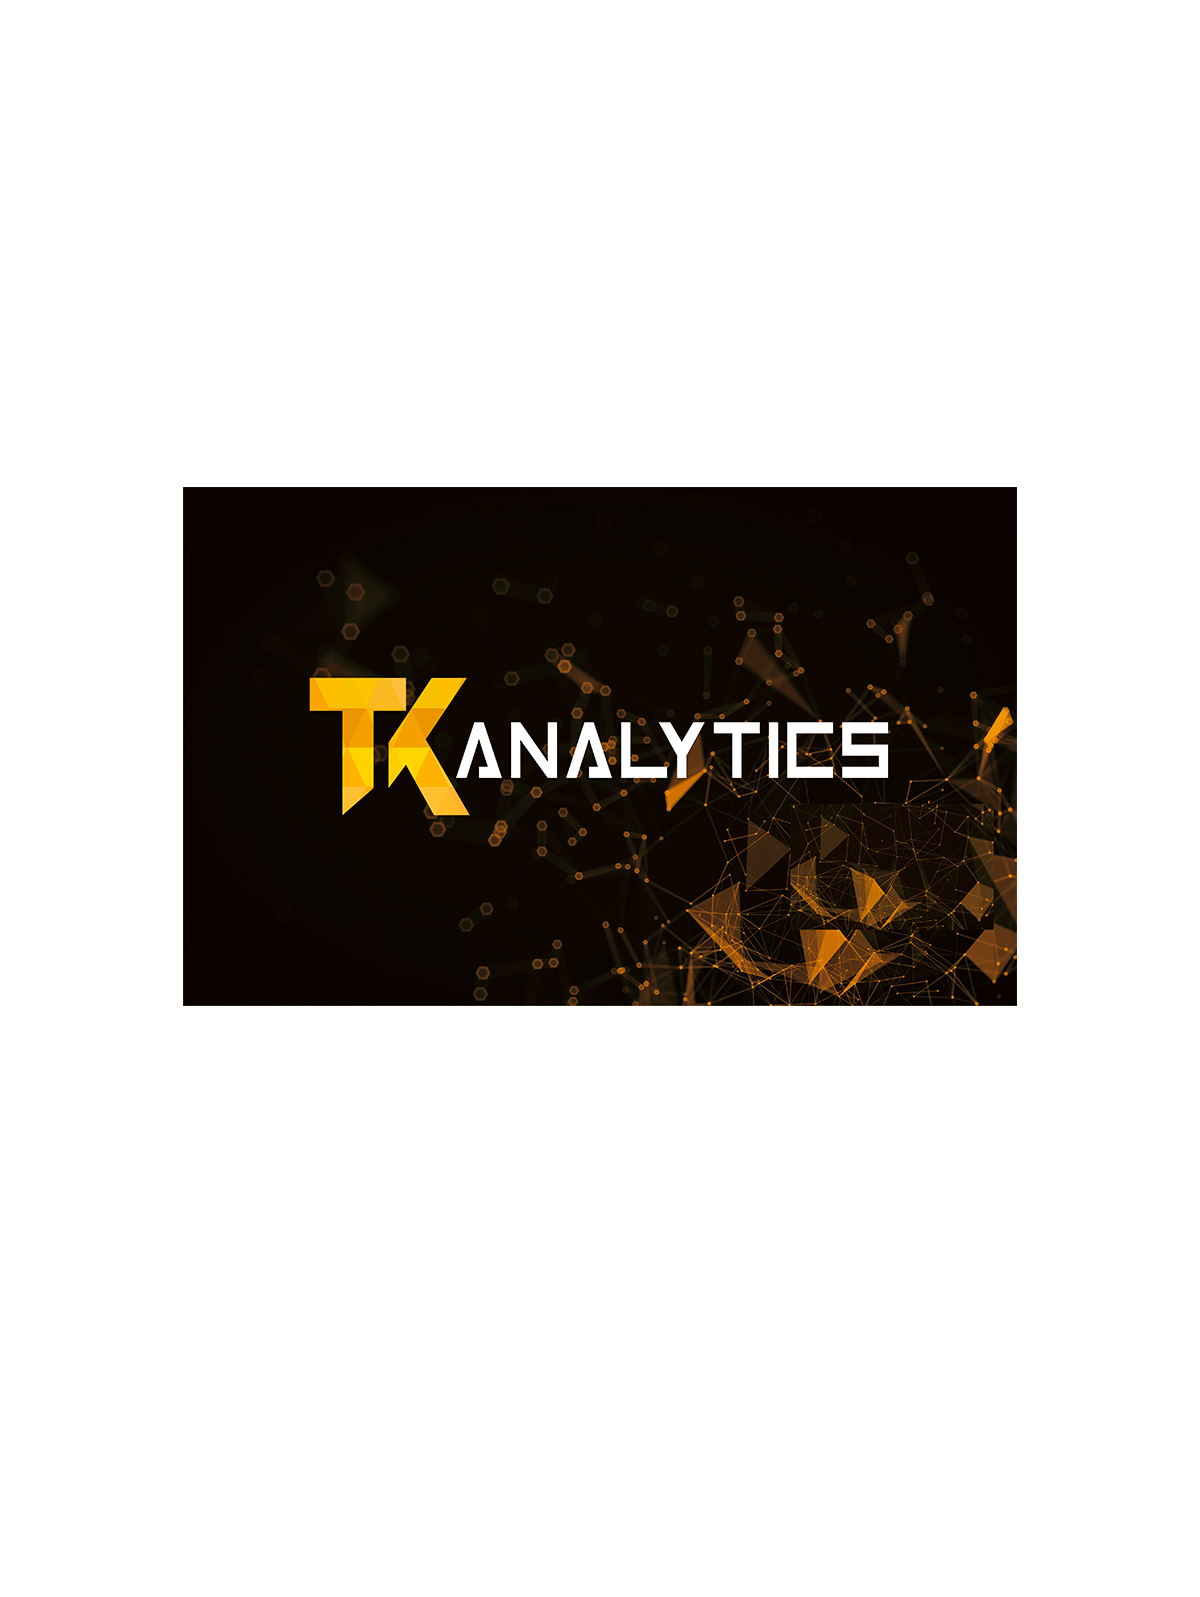 TK Analytics